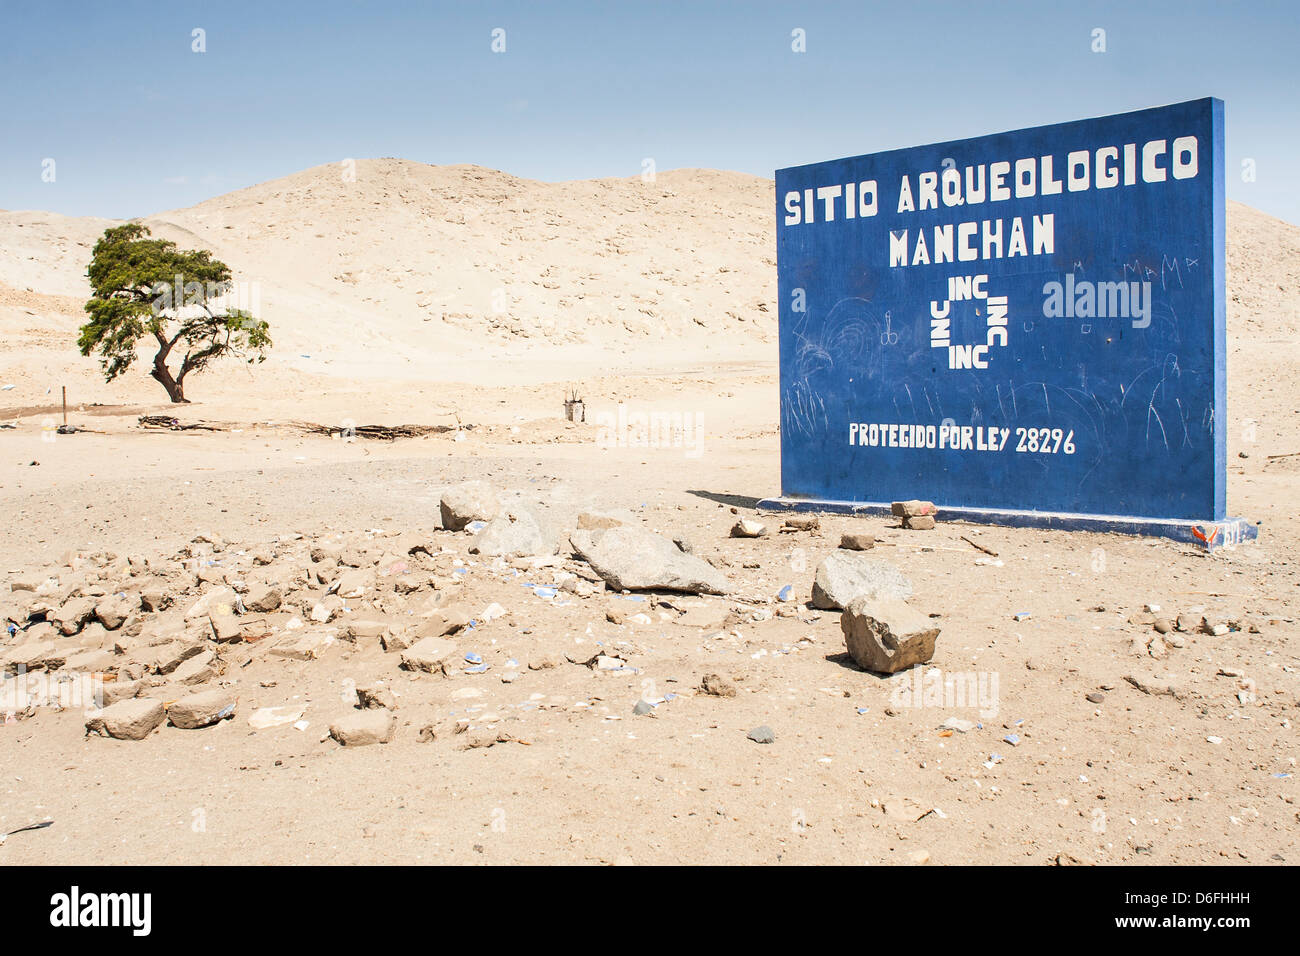 Manchan archaeological site in northern Peruvian desert. - Stock Image